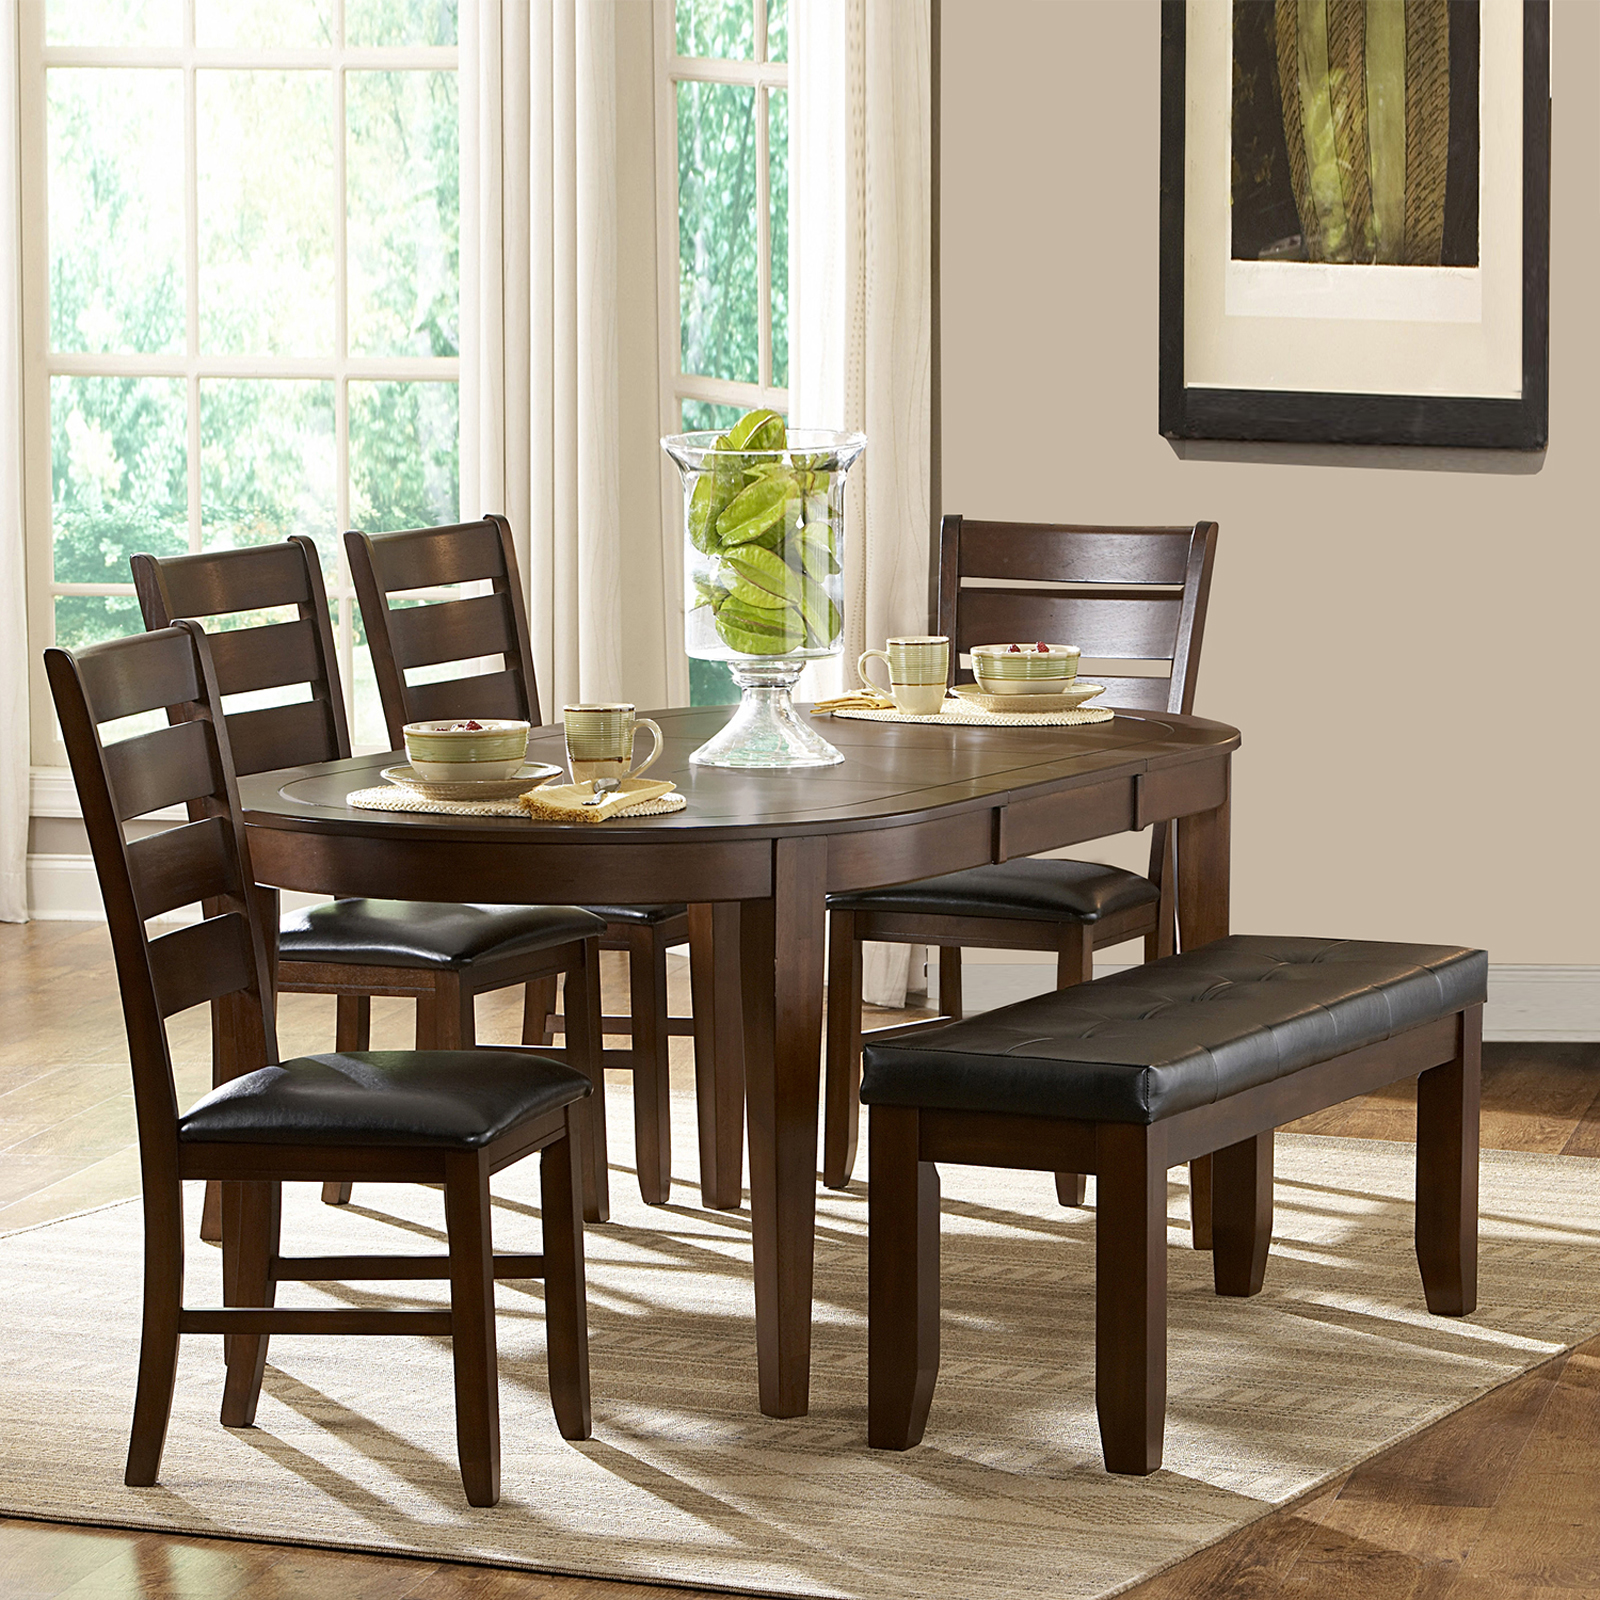 Oval Dining Table Sets with Leaf